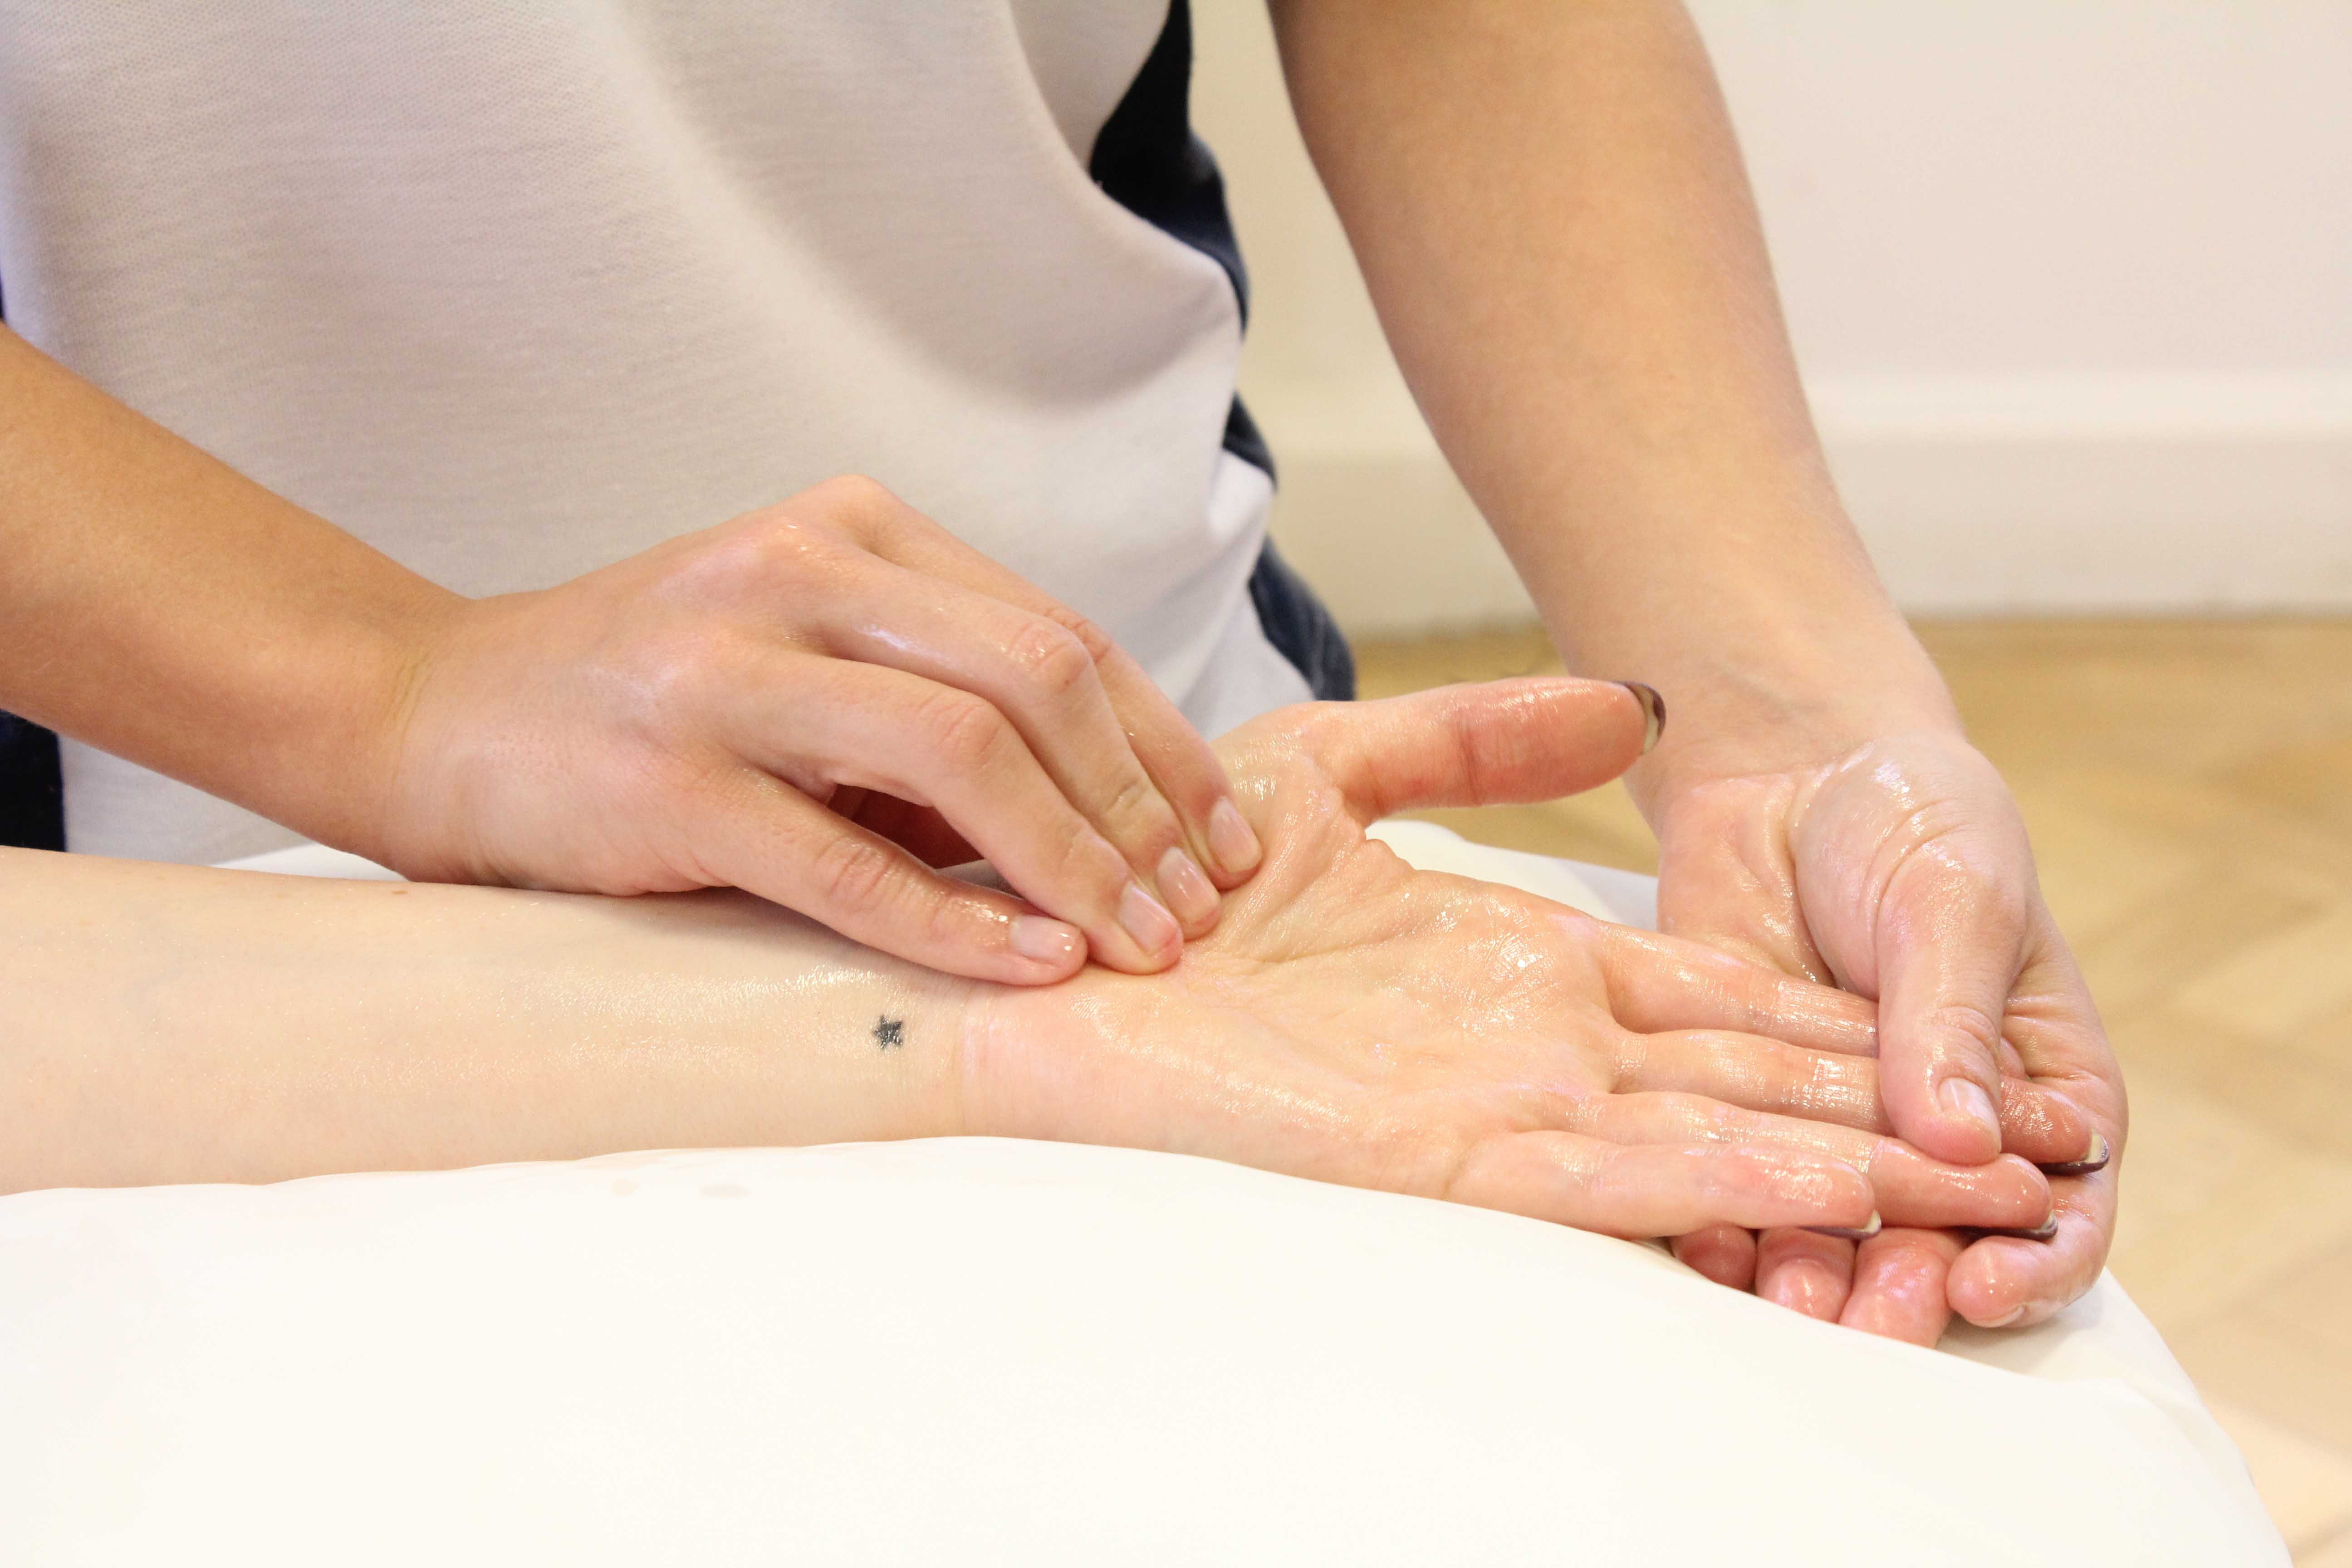 Soft tissue mobilisation of the palma fascia by specialist physiotherapist